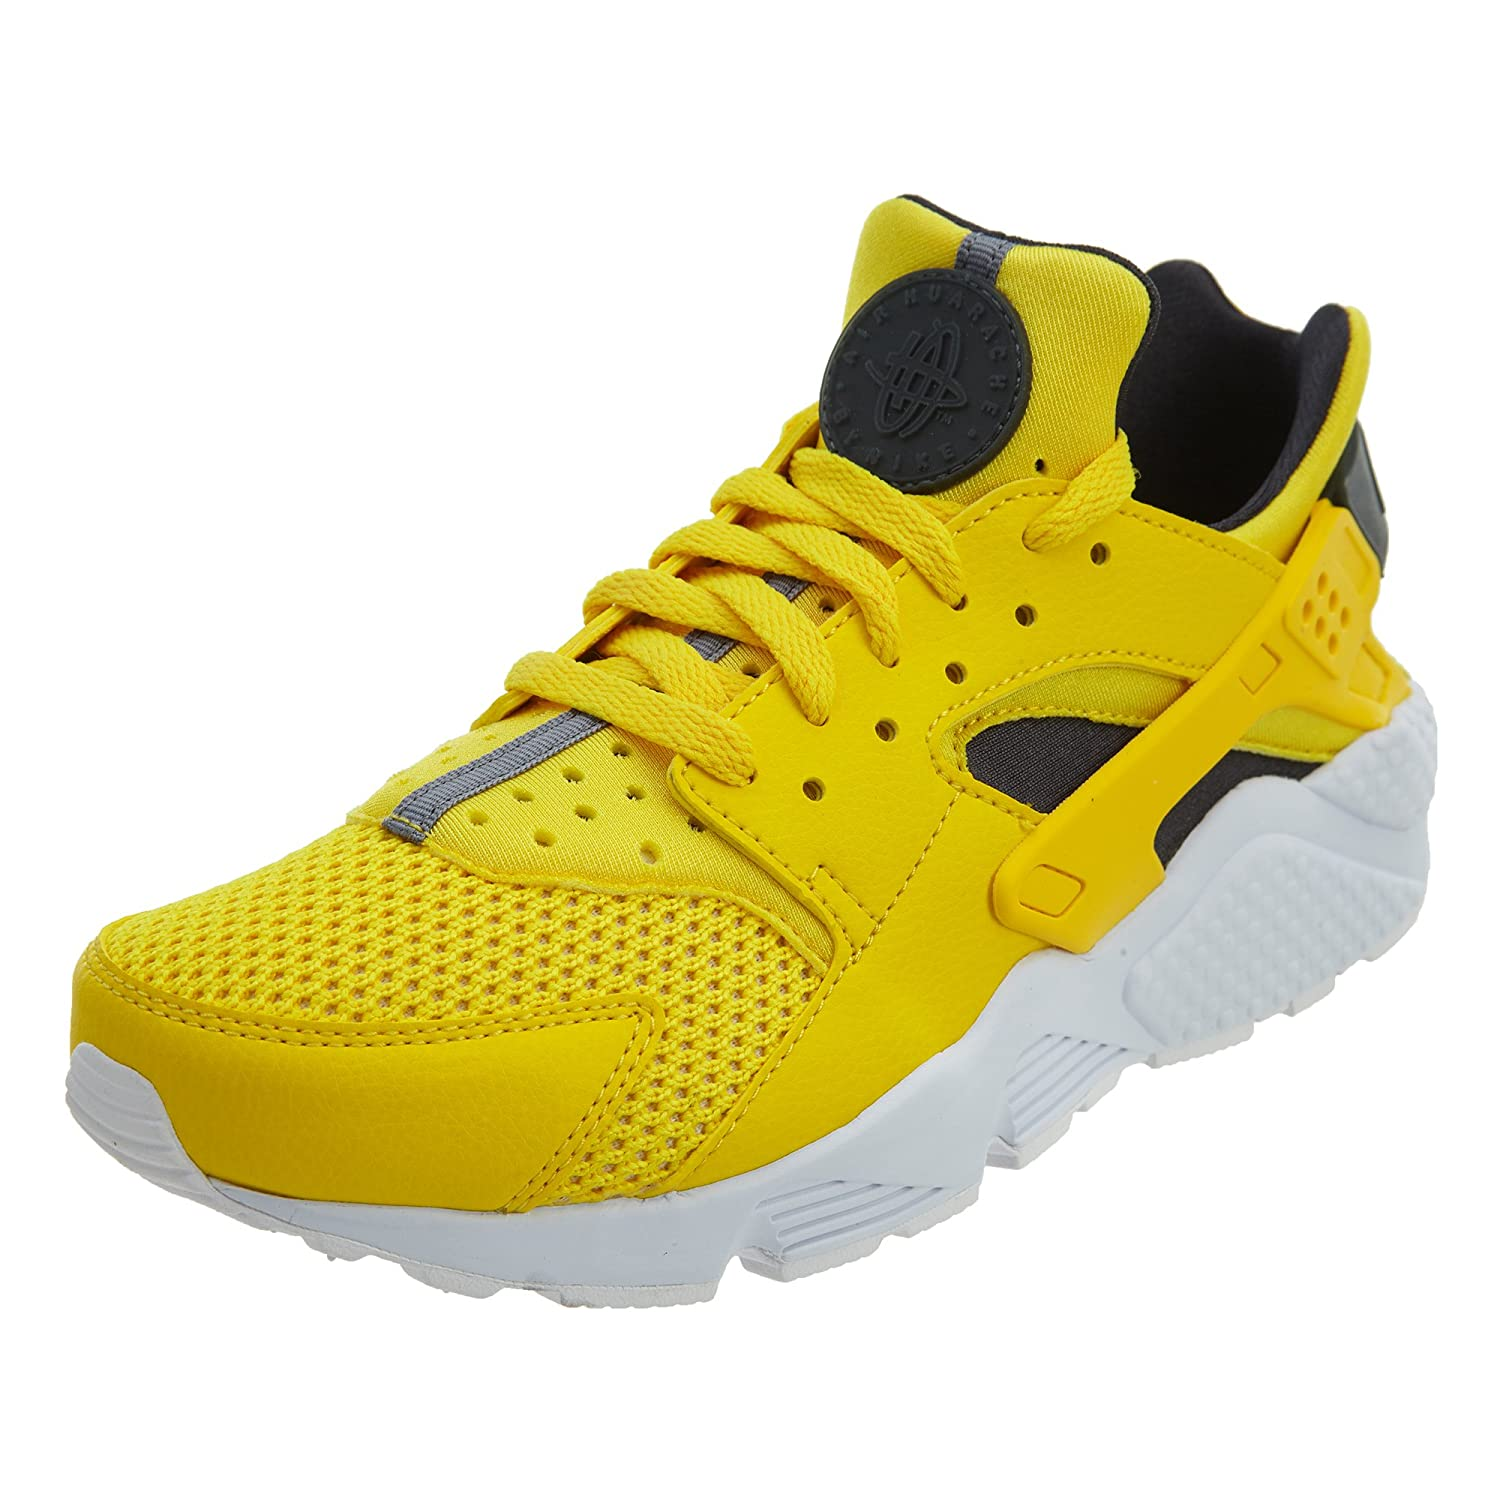 Nike Herren Air Huarache Synthetic Leather-Textile Trainer Trainer Trainer c63bce